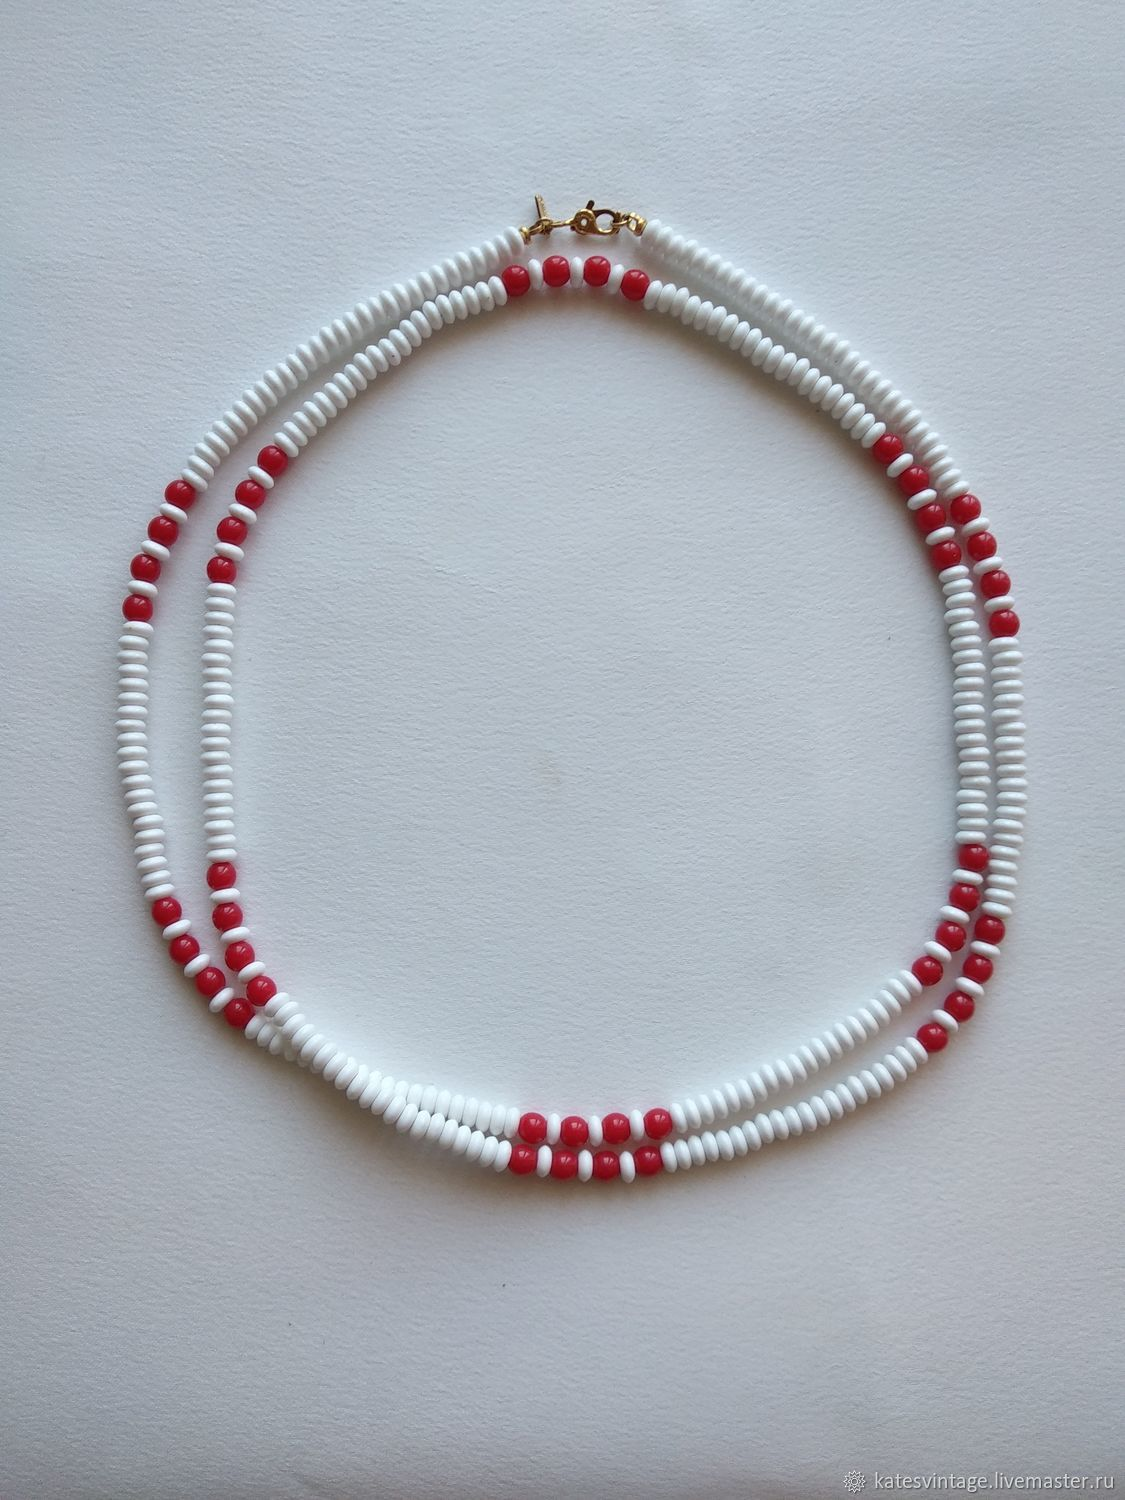 Necklace made of Beads Vintage Monet Long Beads white Red choker, Vintage necklace, Astrakhan,  Фото №1